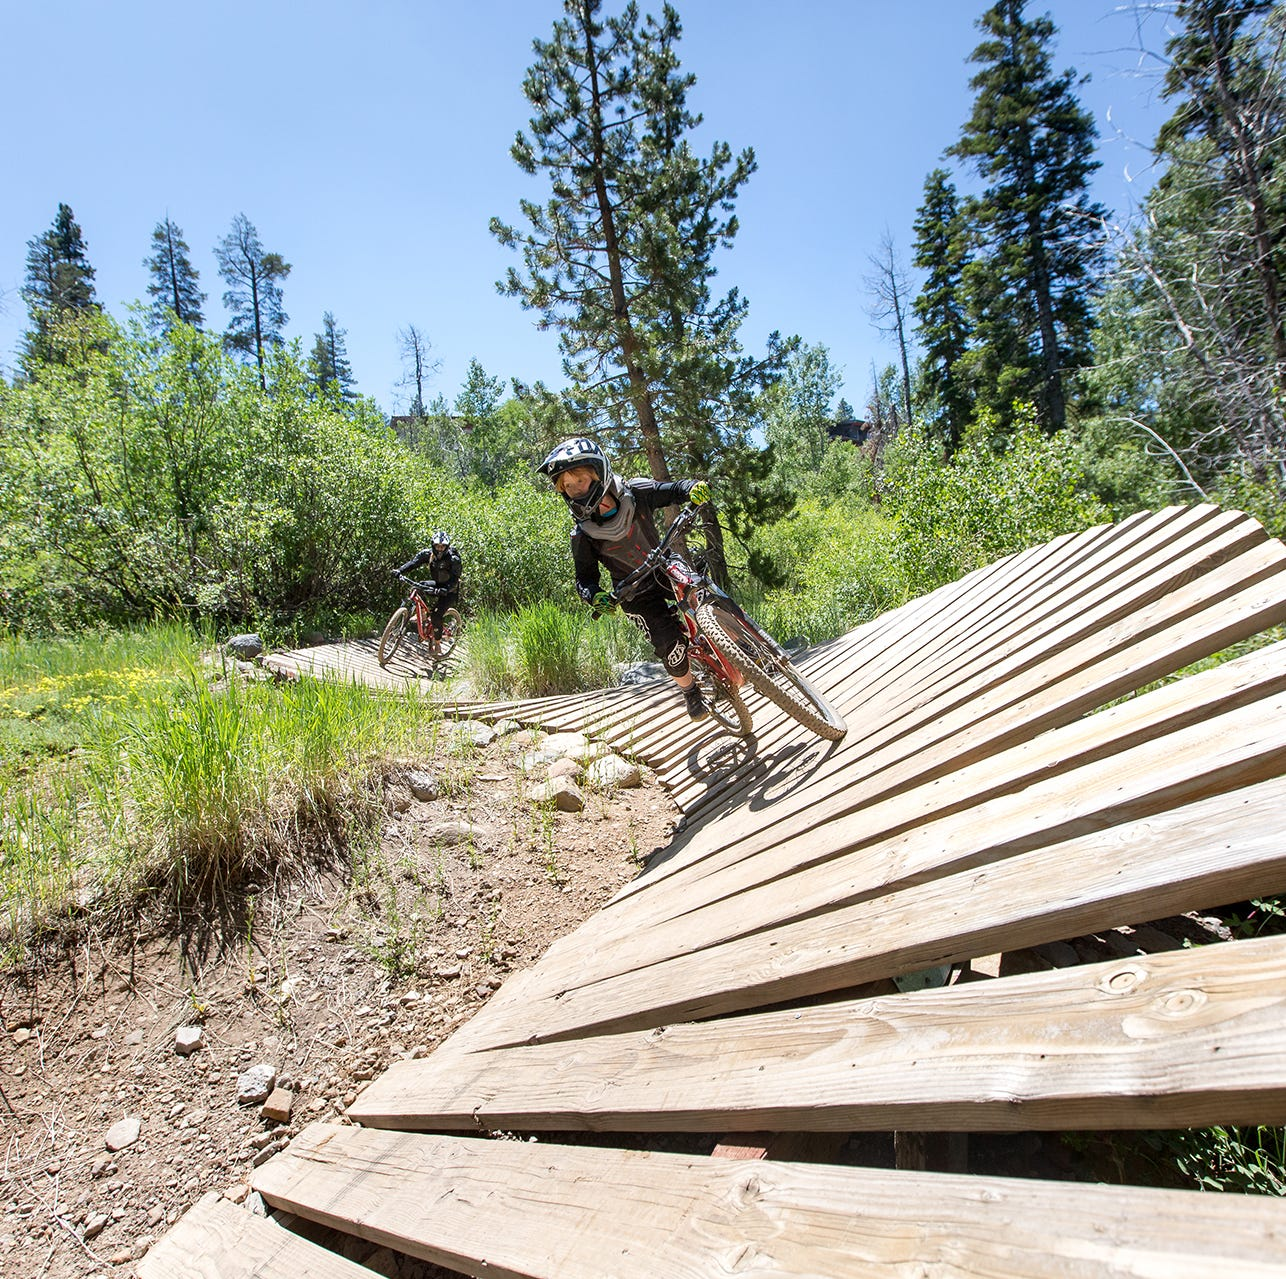 Interbike kicks off with free bike demo days at Northstar